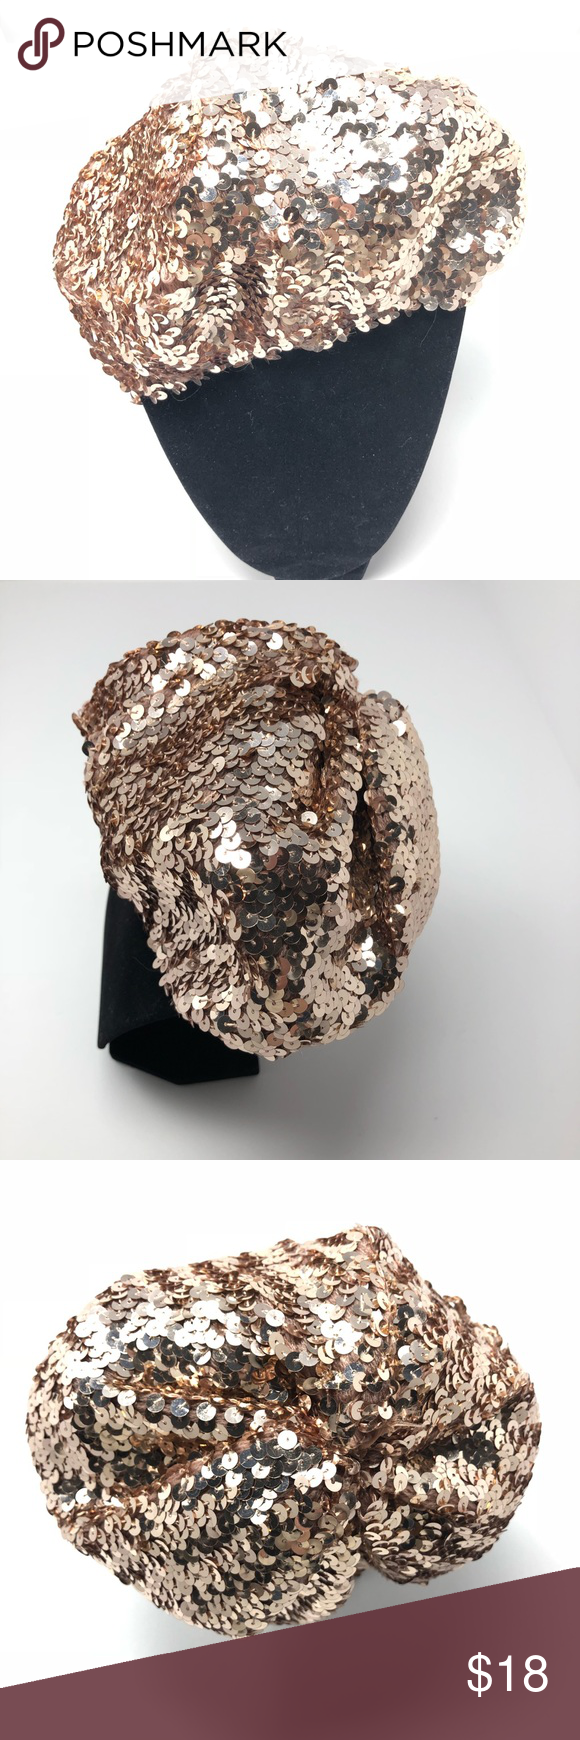 7bb814b2f5130 NWT Evelyn K Rose Gold Sequin Beret 0199 NWT Evelyn K Rose Gold Sequin Beret.  Very stretchy. One size fits all most. Slouchy. Metallic. Nordstrom  exclusive.